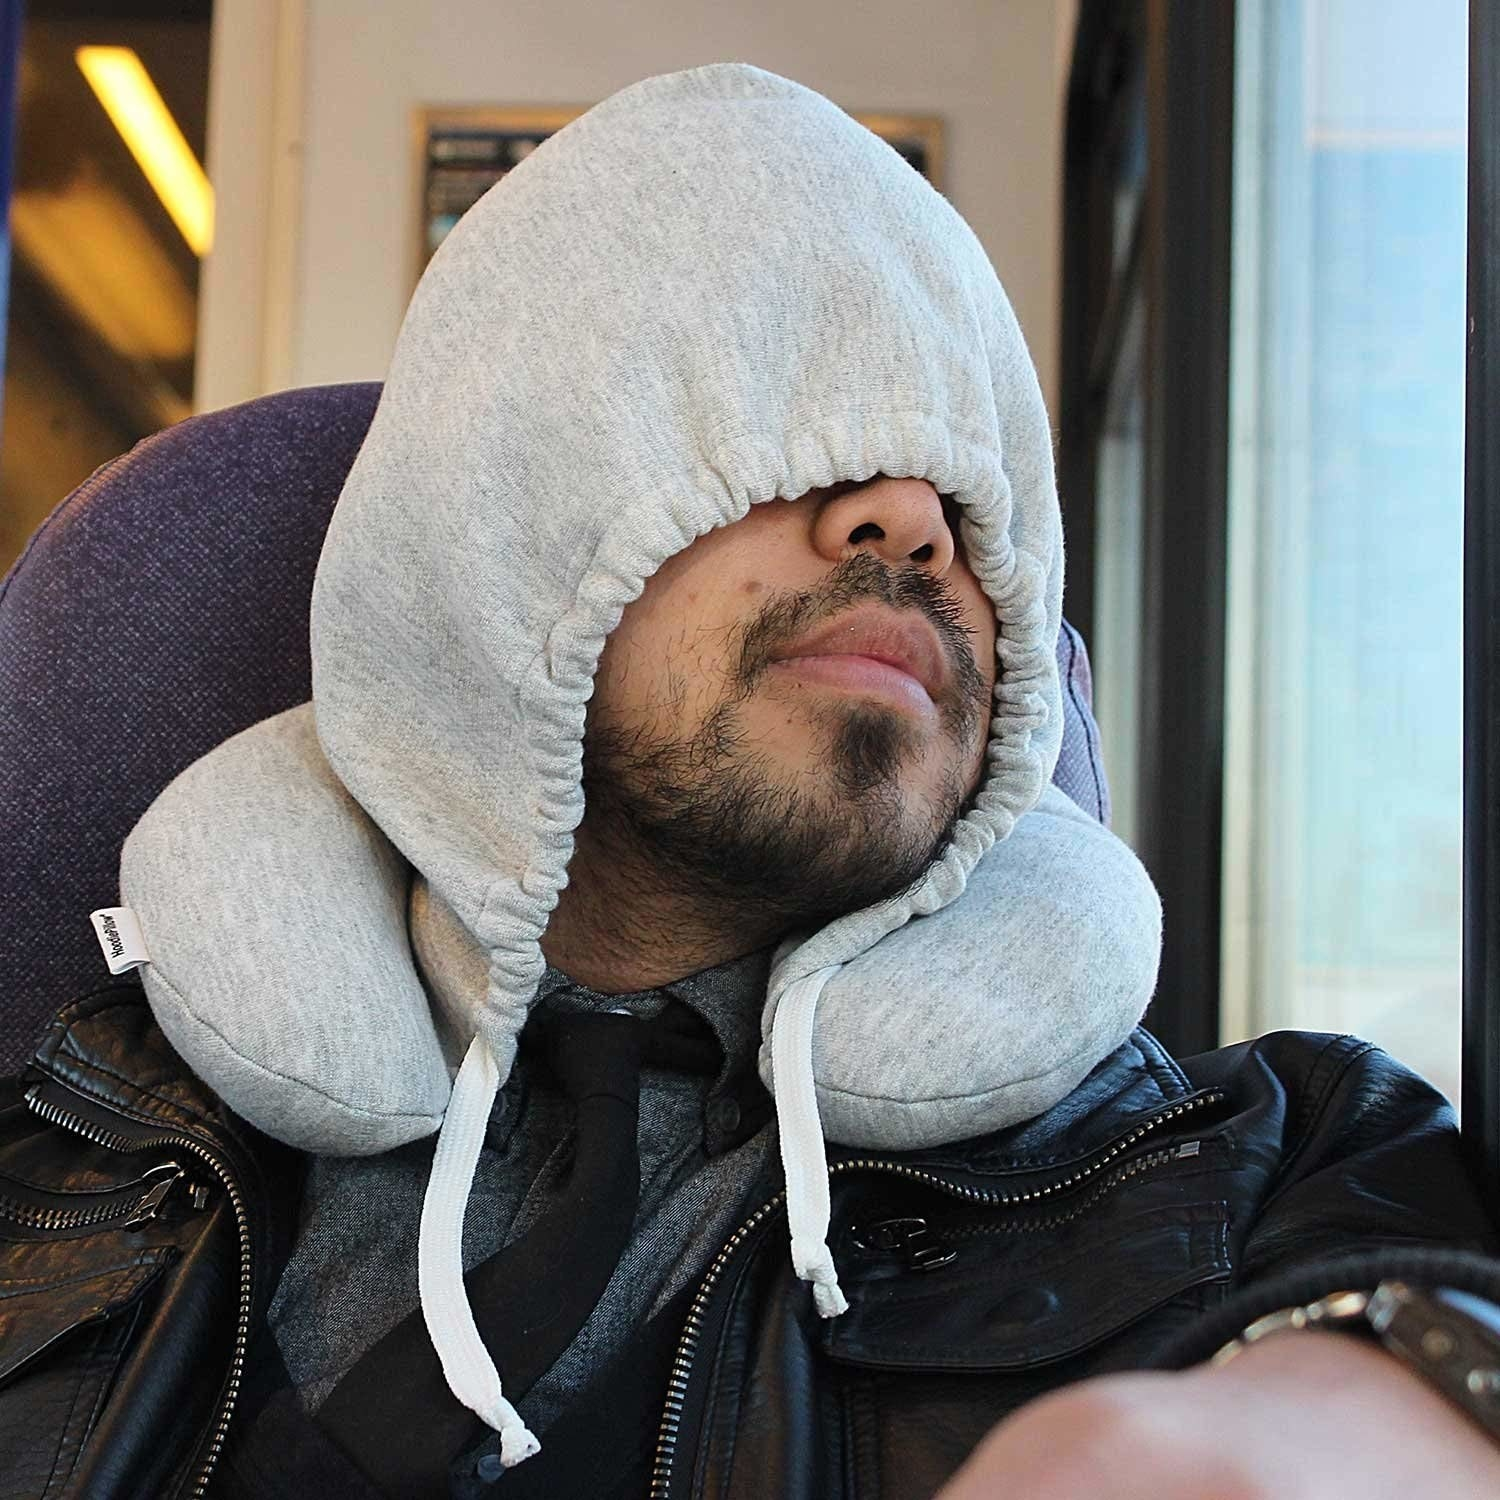 Person sleeping on train with pillow around neck and connected hood over eyes